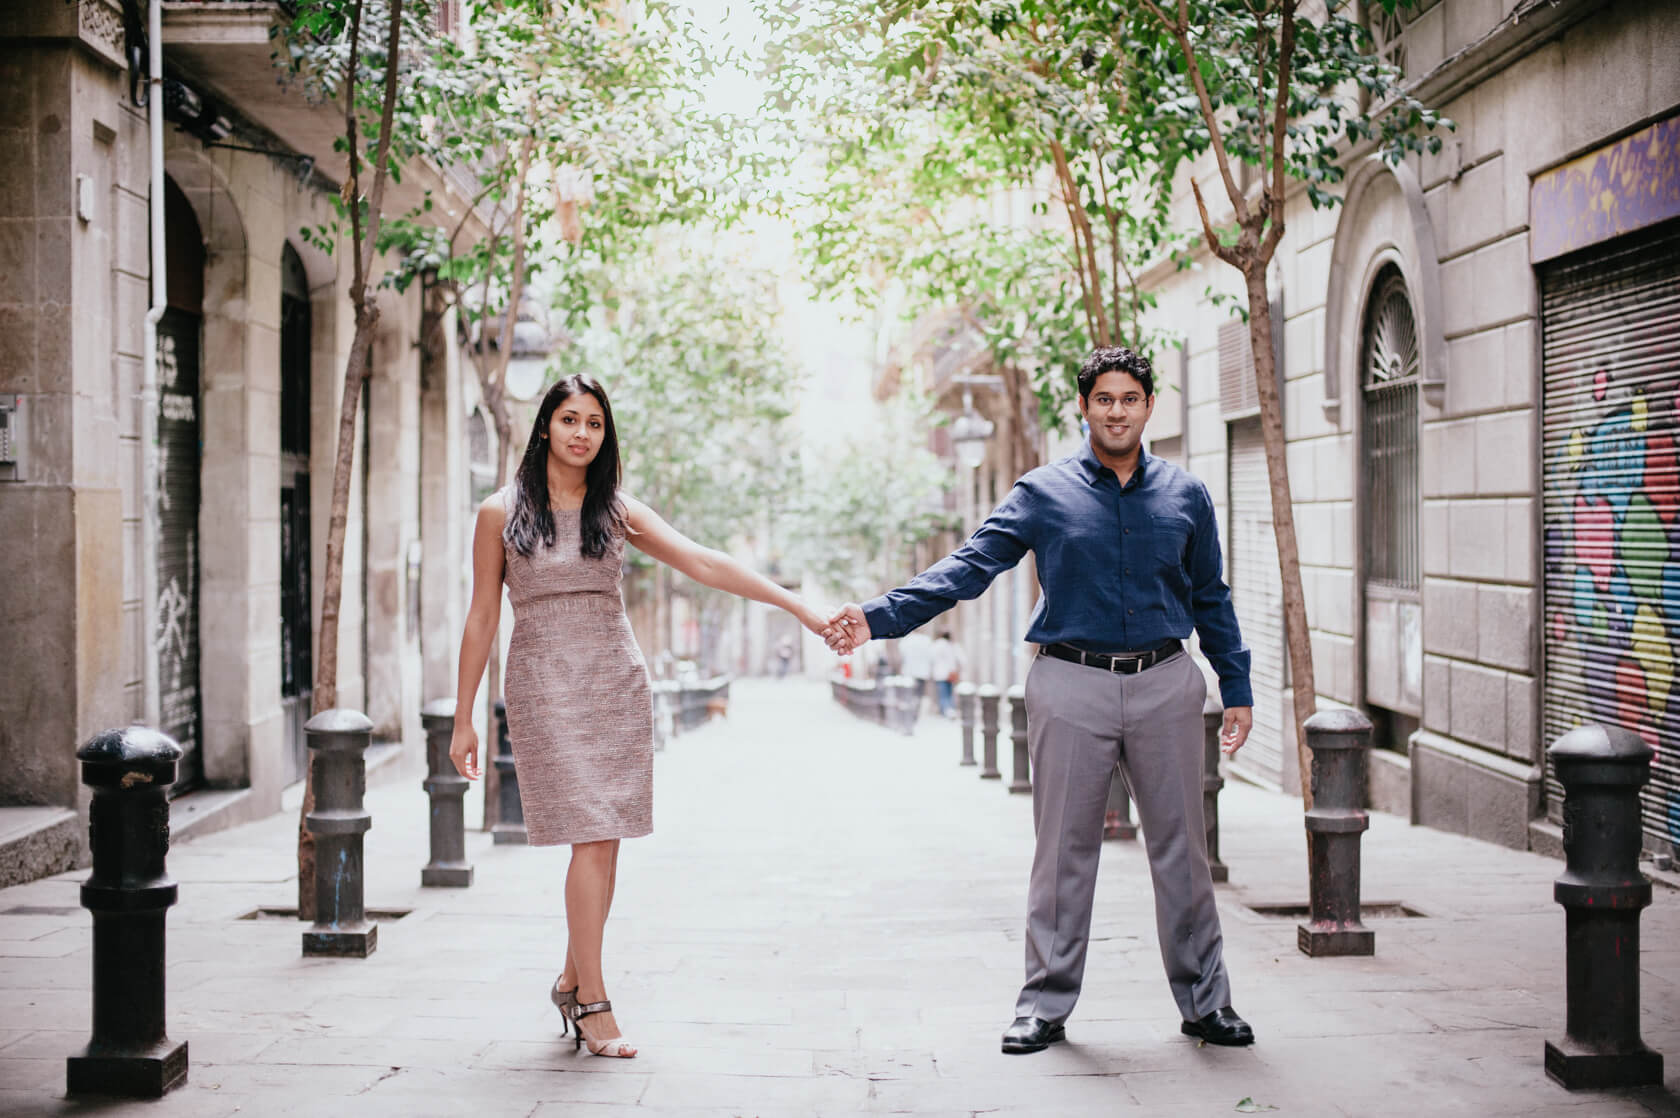 Engagement photo-shoot in Barcelona